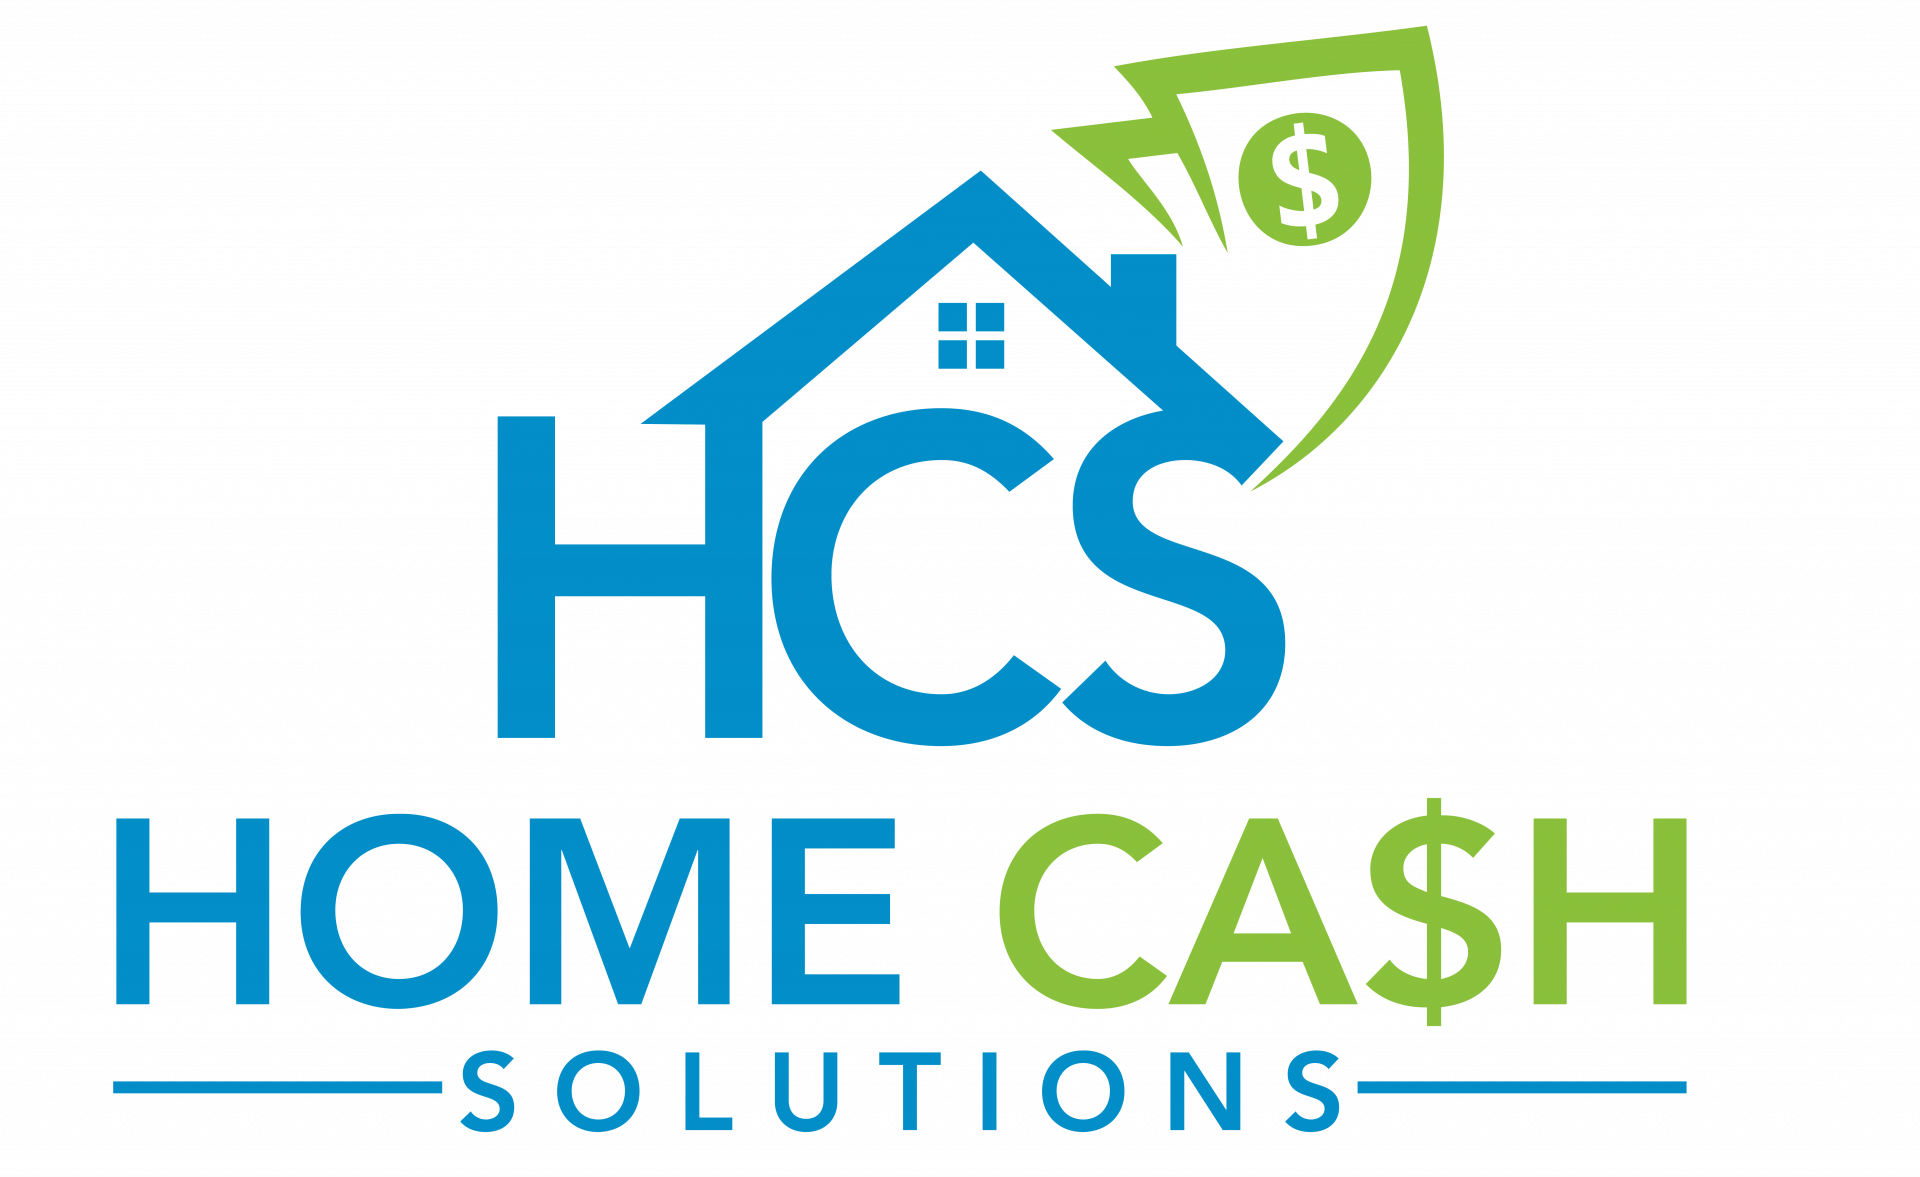 Home Cash Solutions  logo